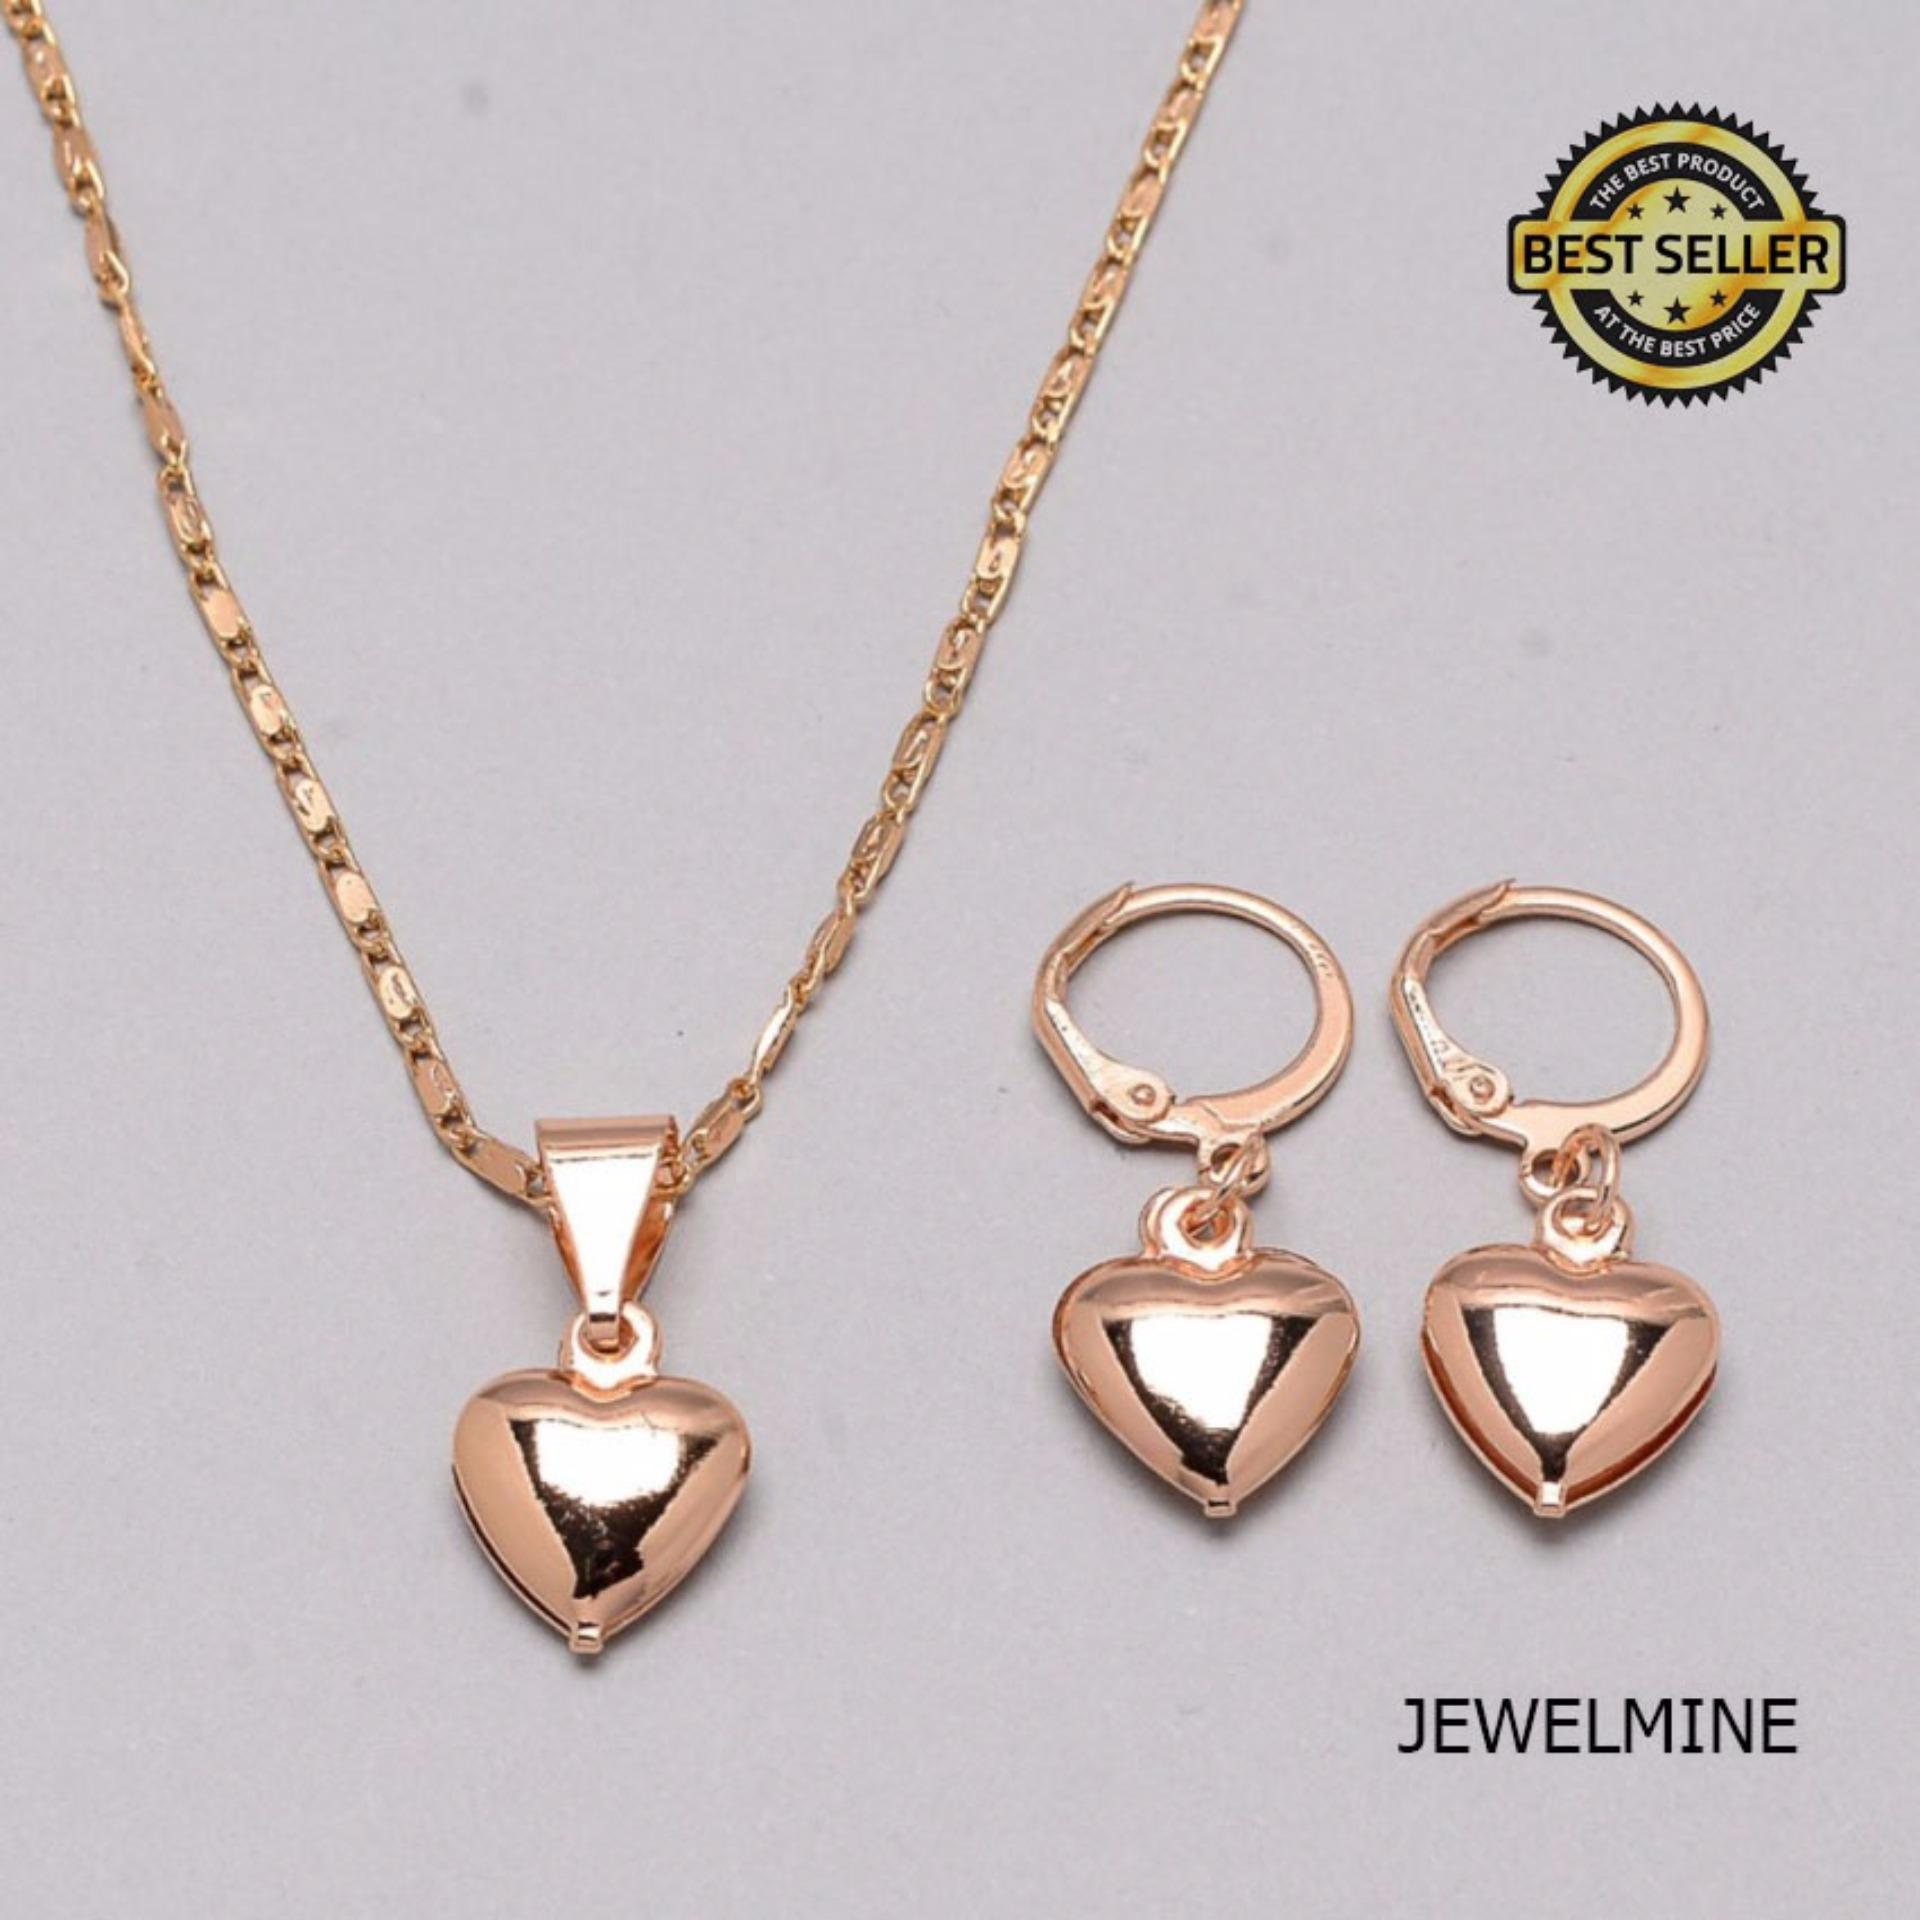 Jewelry Set Gold Philippines The Best Jewelry 2018